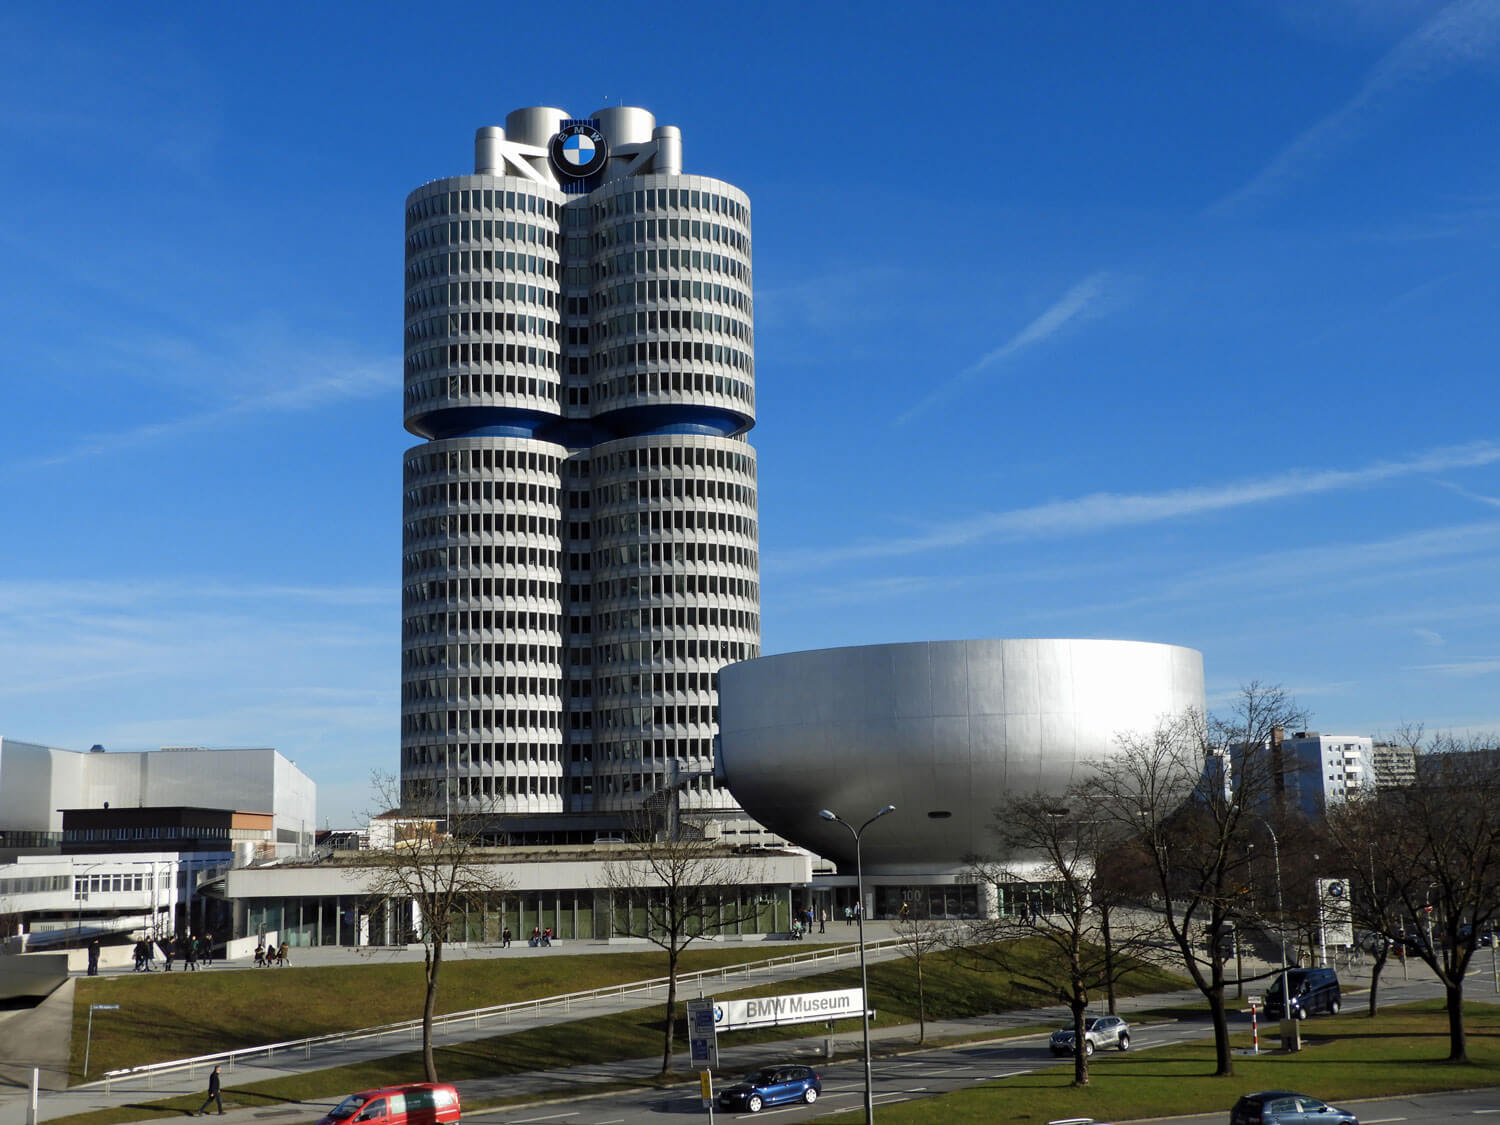 germany-munich-bmw-welt-museum-tower.jpg